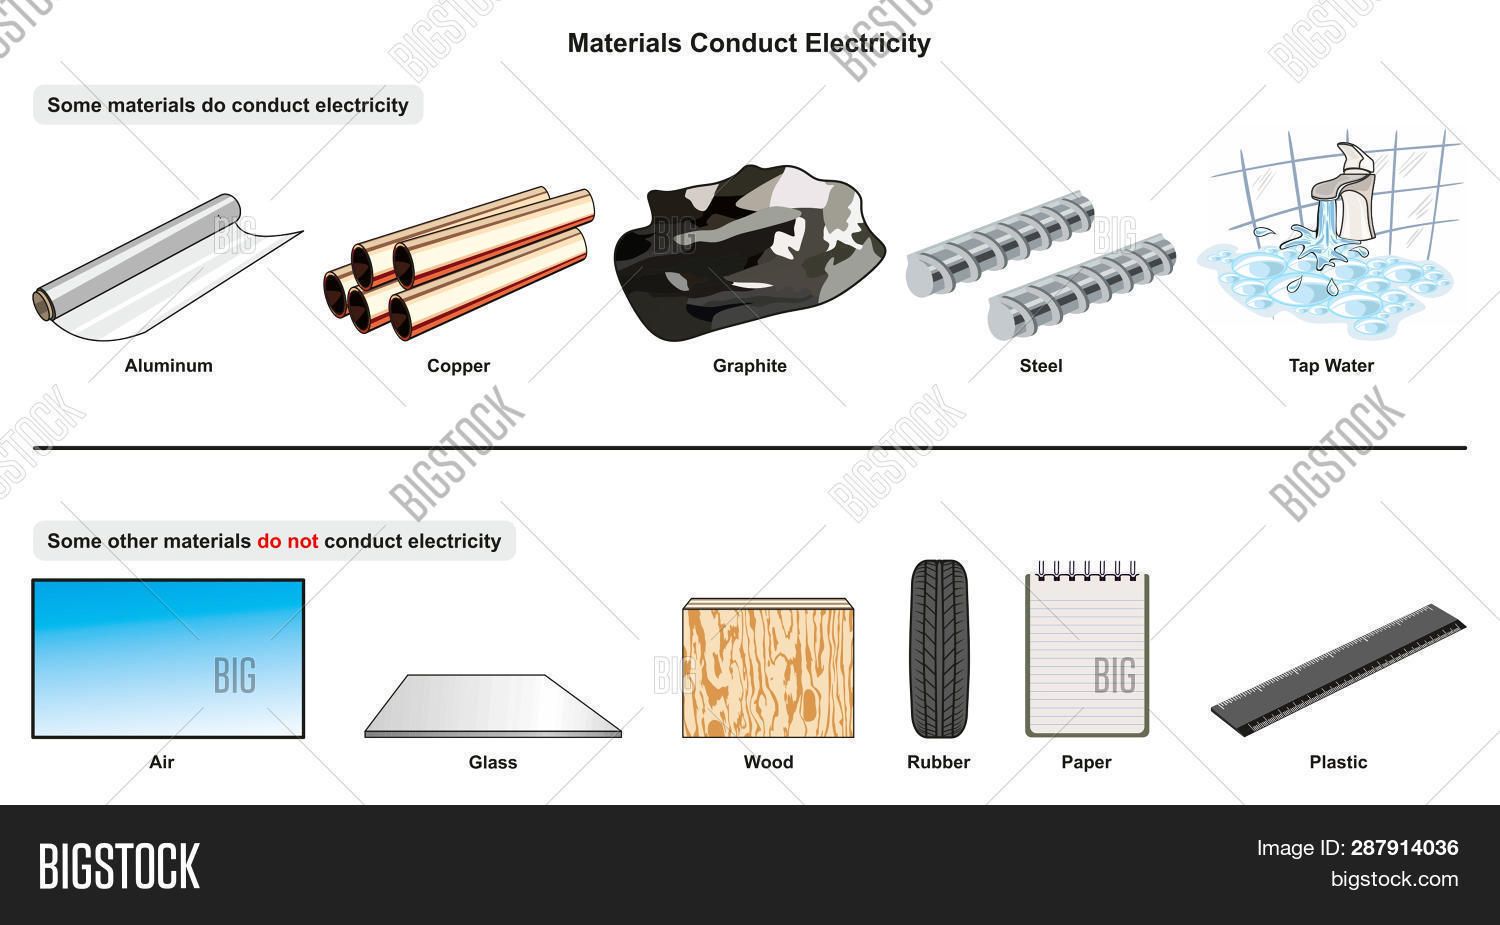 hight resolution of materials conduct electricity infographic diagram with examples of aluminum copper graphite steel tap water and isolators